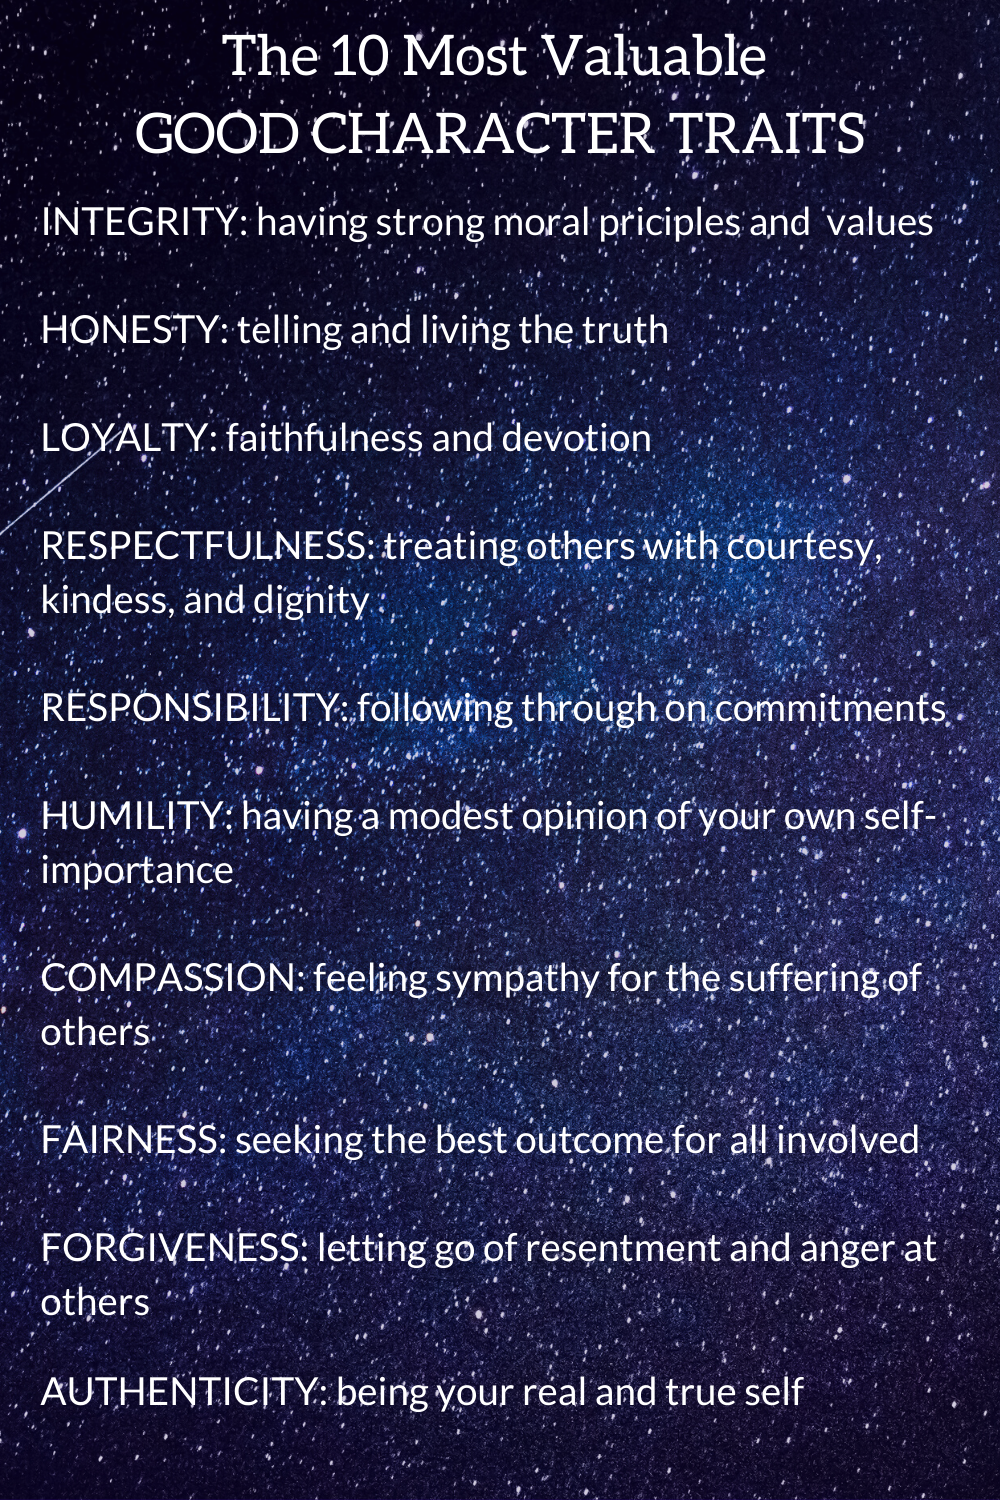 25 Good Character Traits List Essential For Happiness Good Character Traits Character Trait Character Traits List